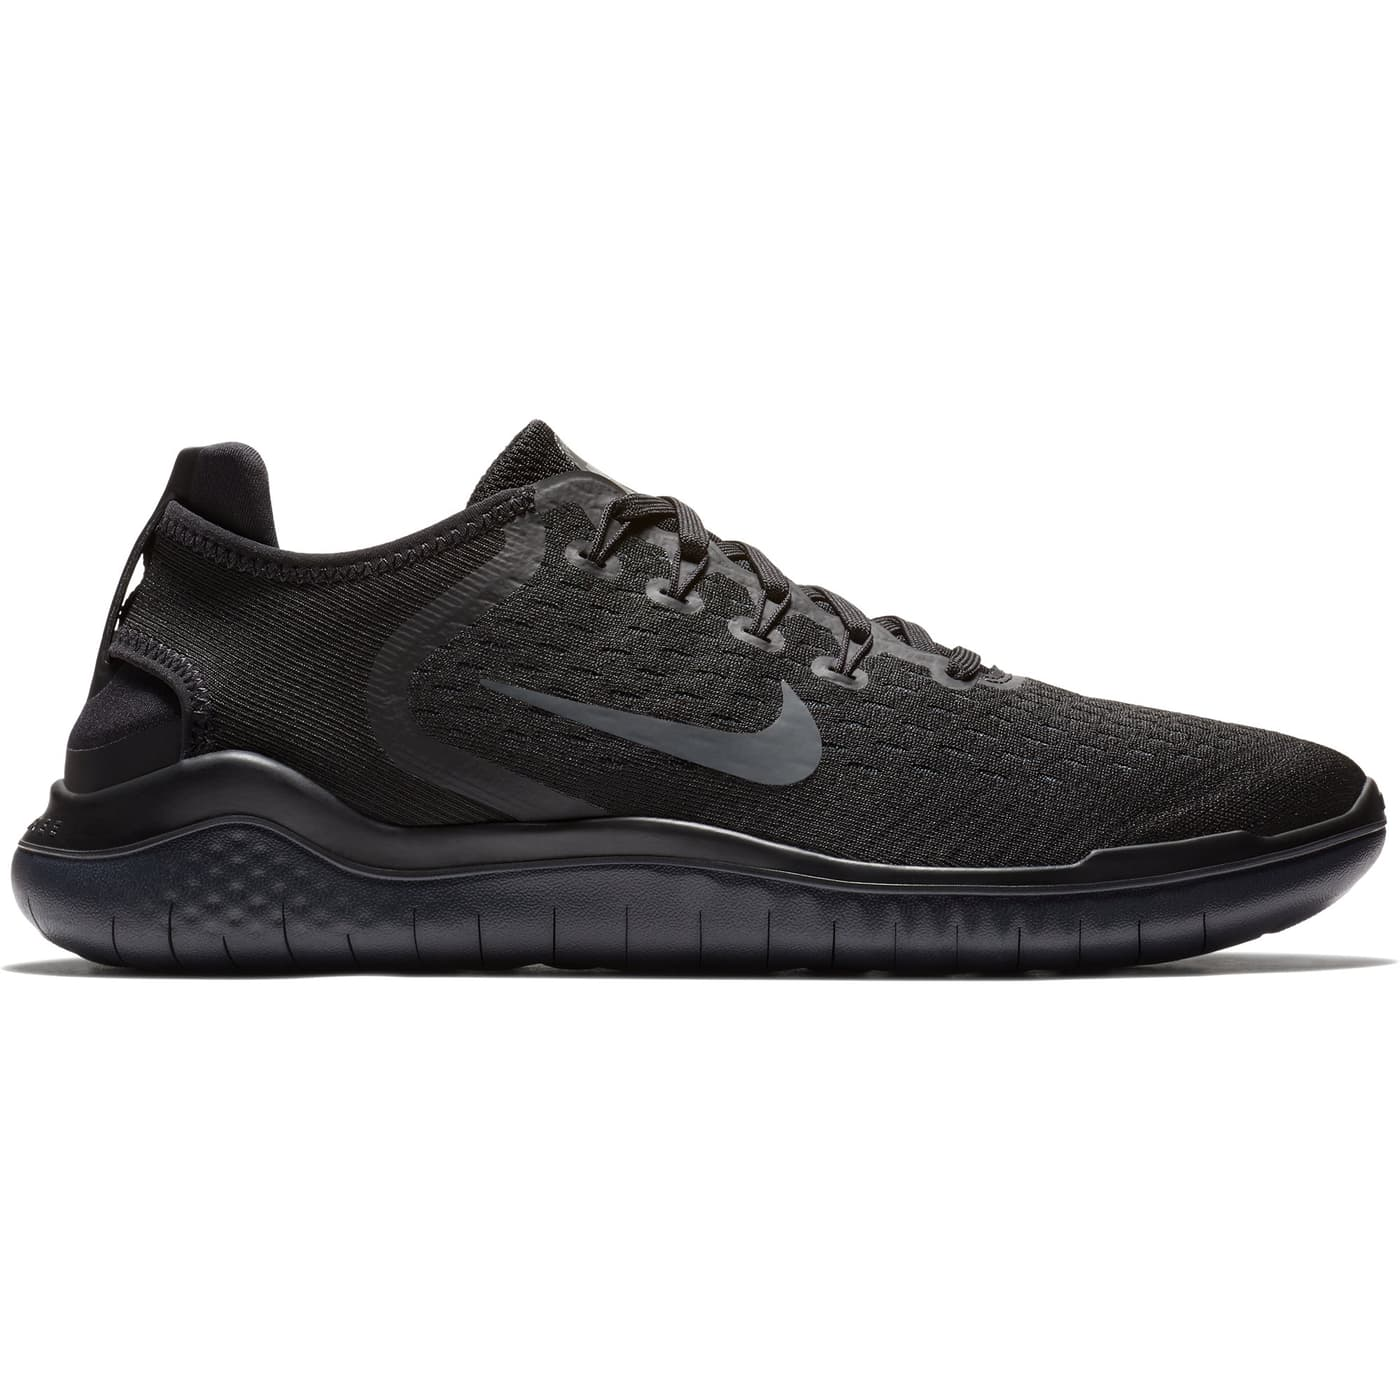 Nike Free Run 2018 Chaussures de loisirs pour homme